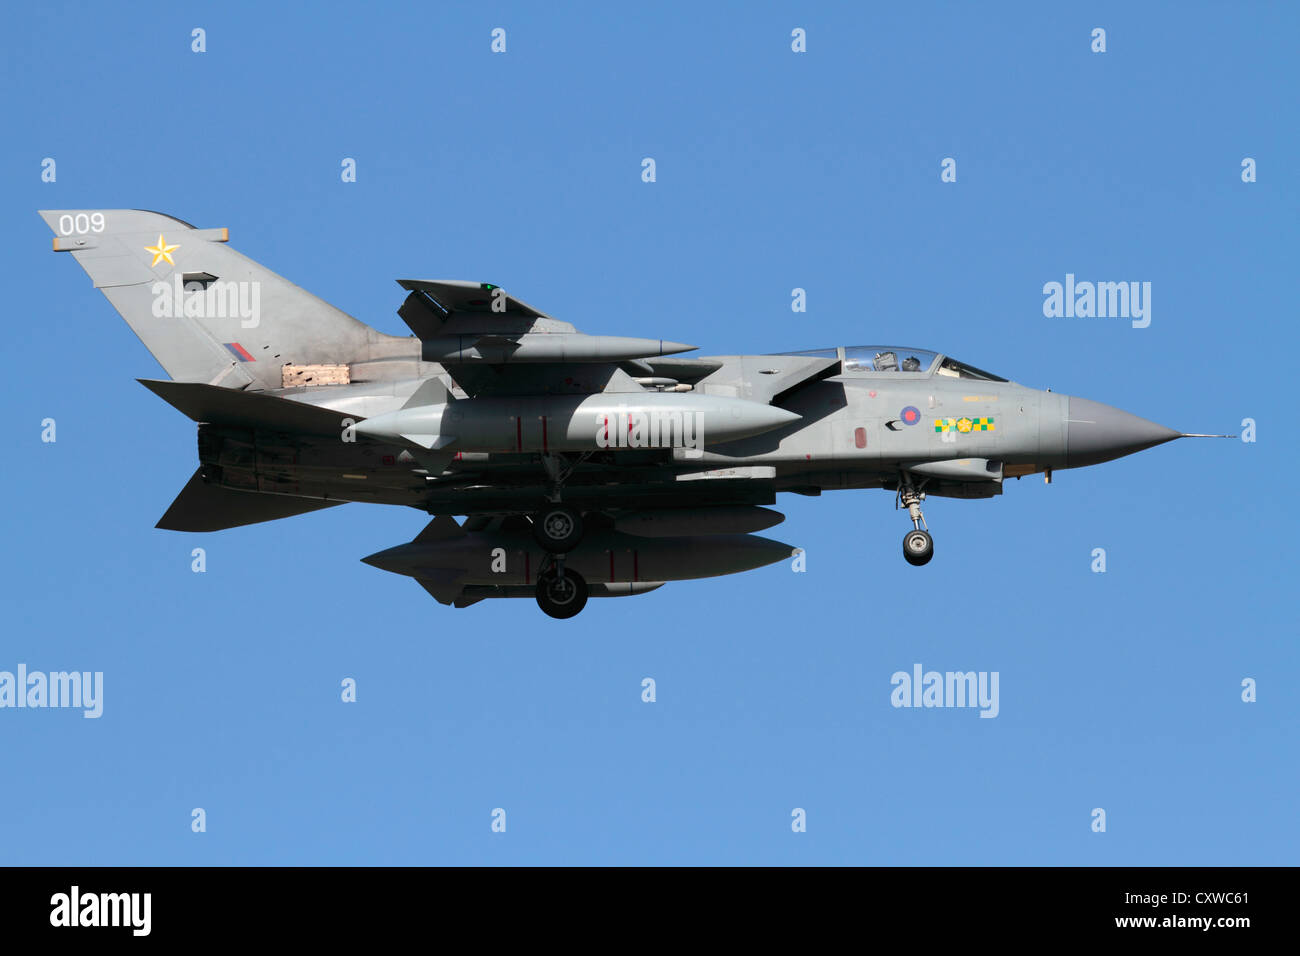 Tornado GR4 tactical bomber aircraft of the Royal Air Force in flight. Military aviation. - Stock Image